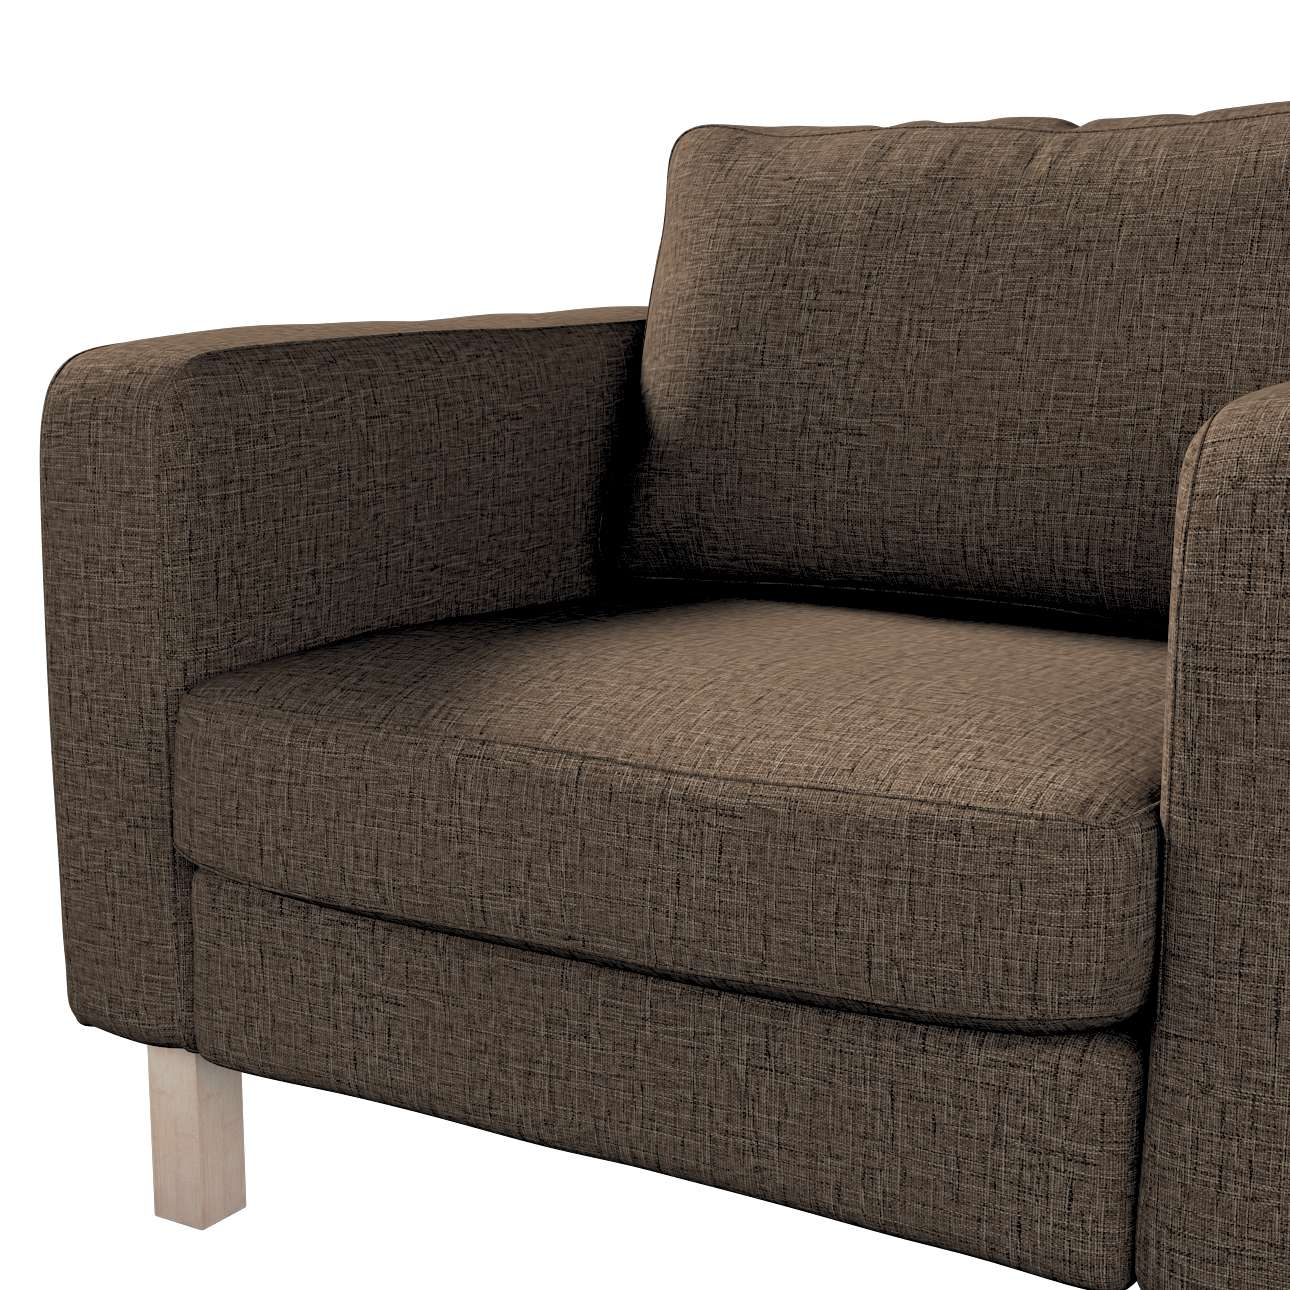 Karlstad armchair cover in collection Living, fabric: 106-92